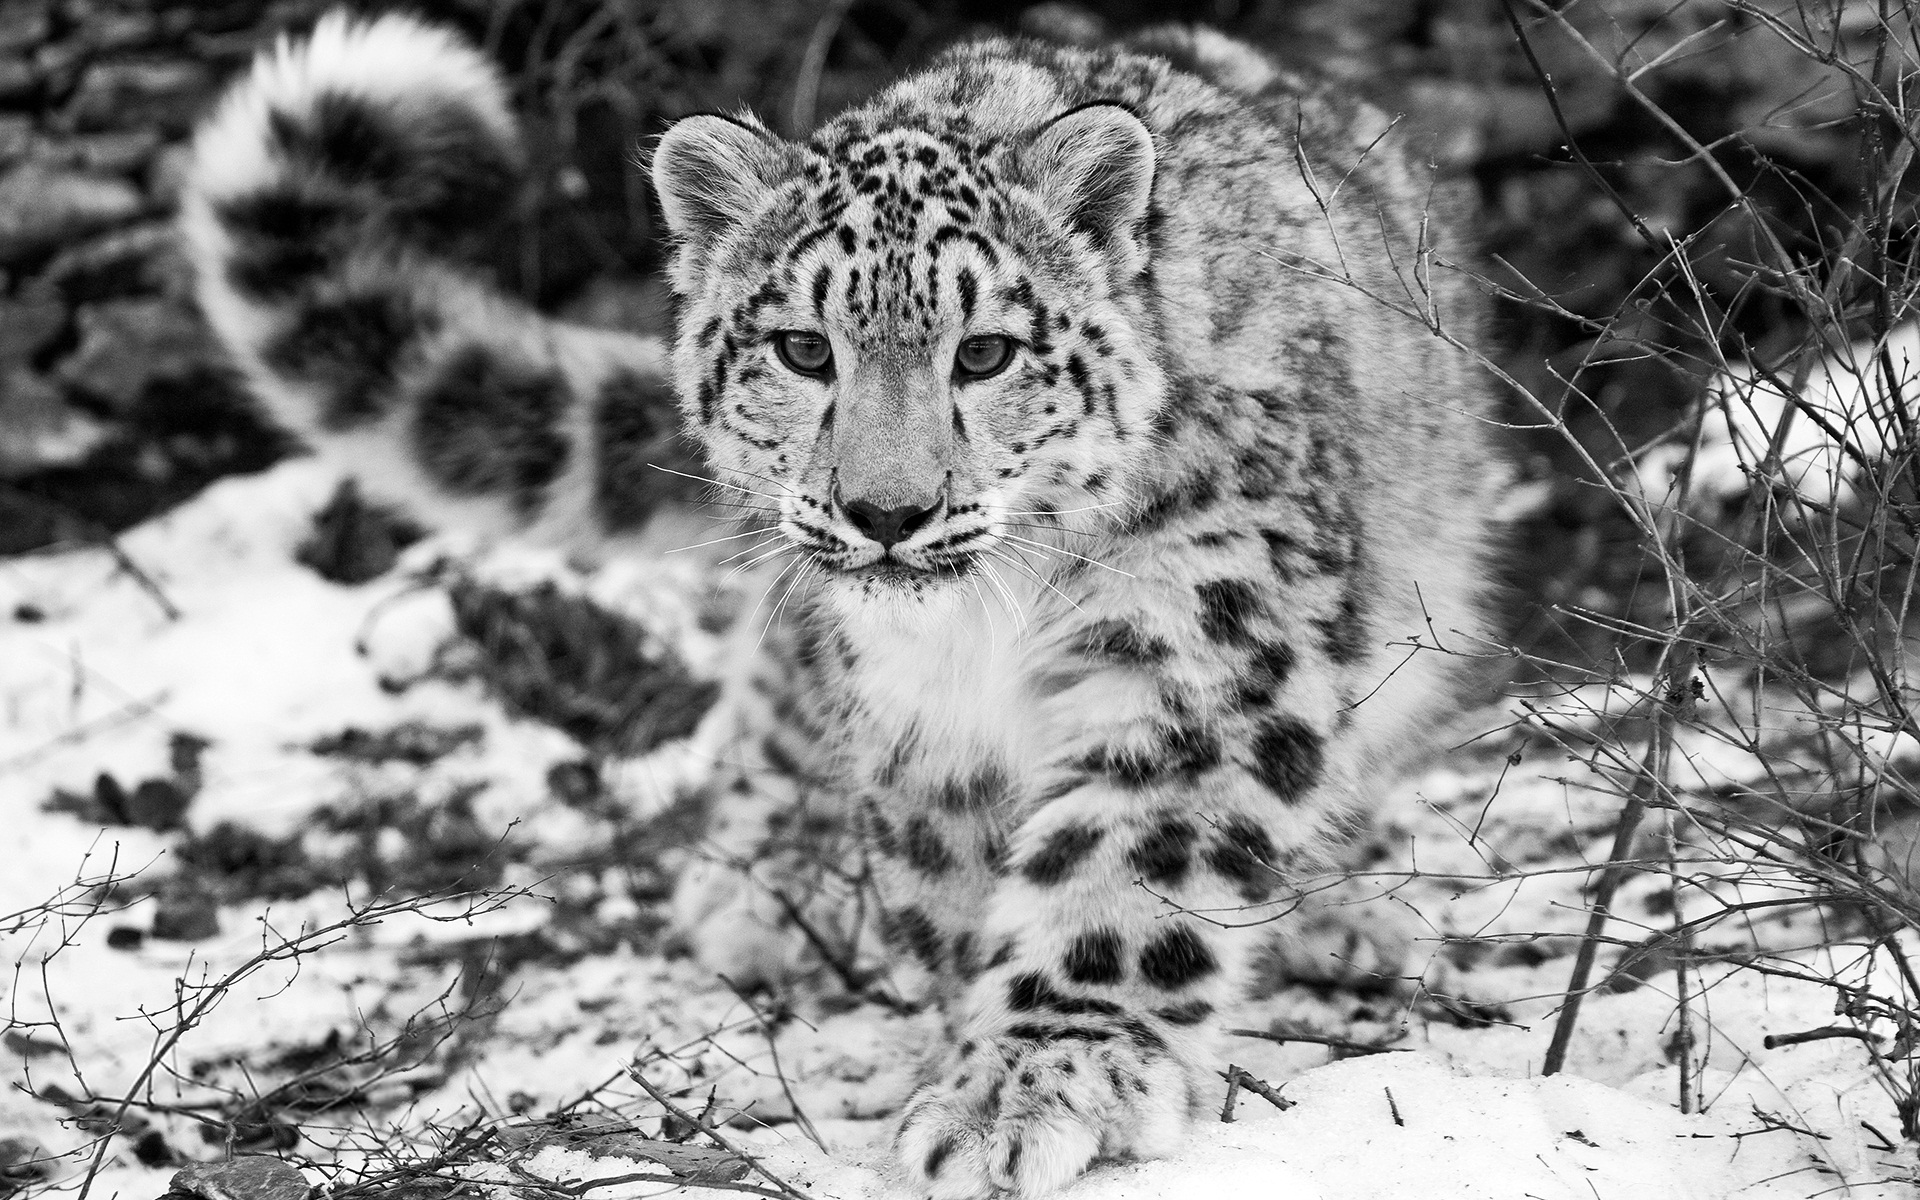 The Snow Leopard 691.84 Kb